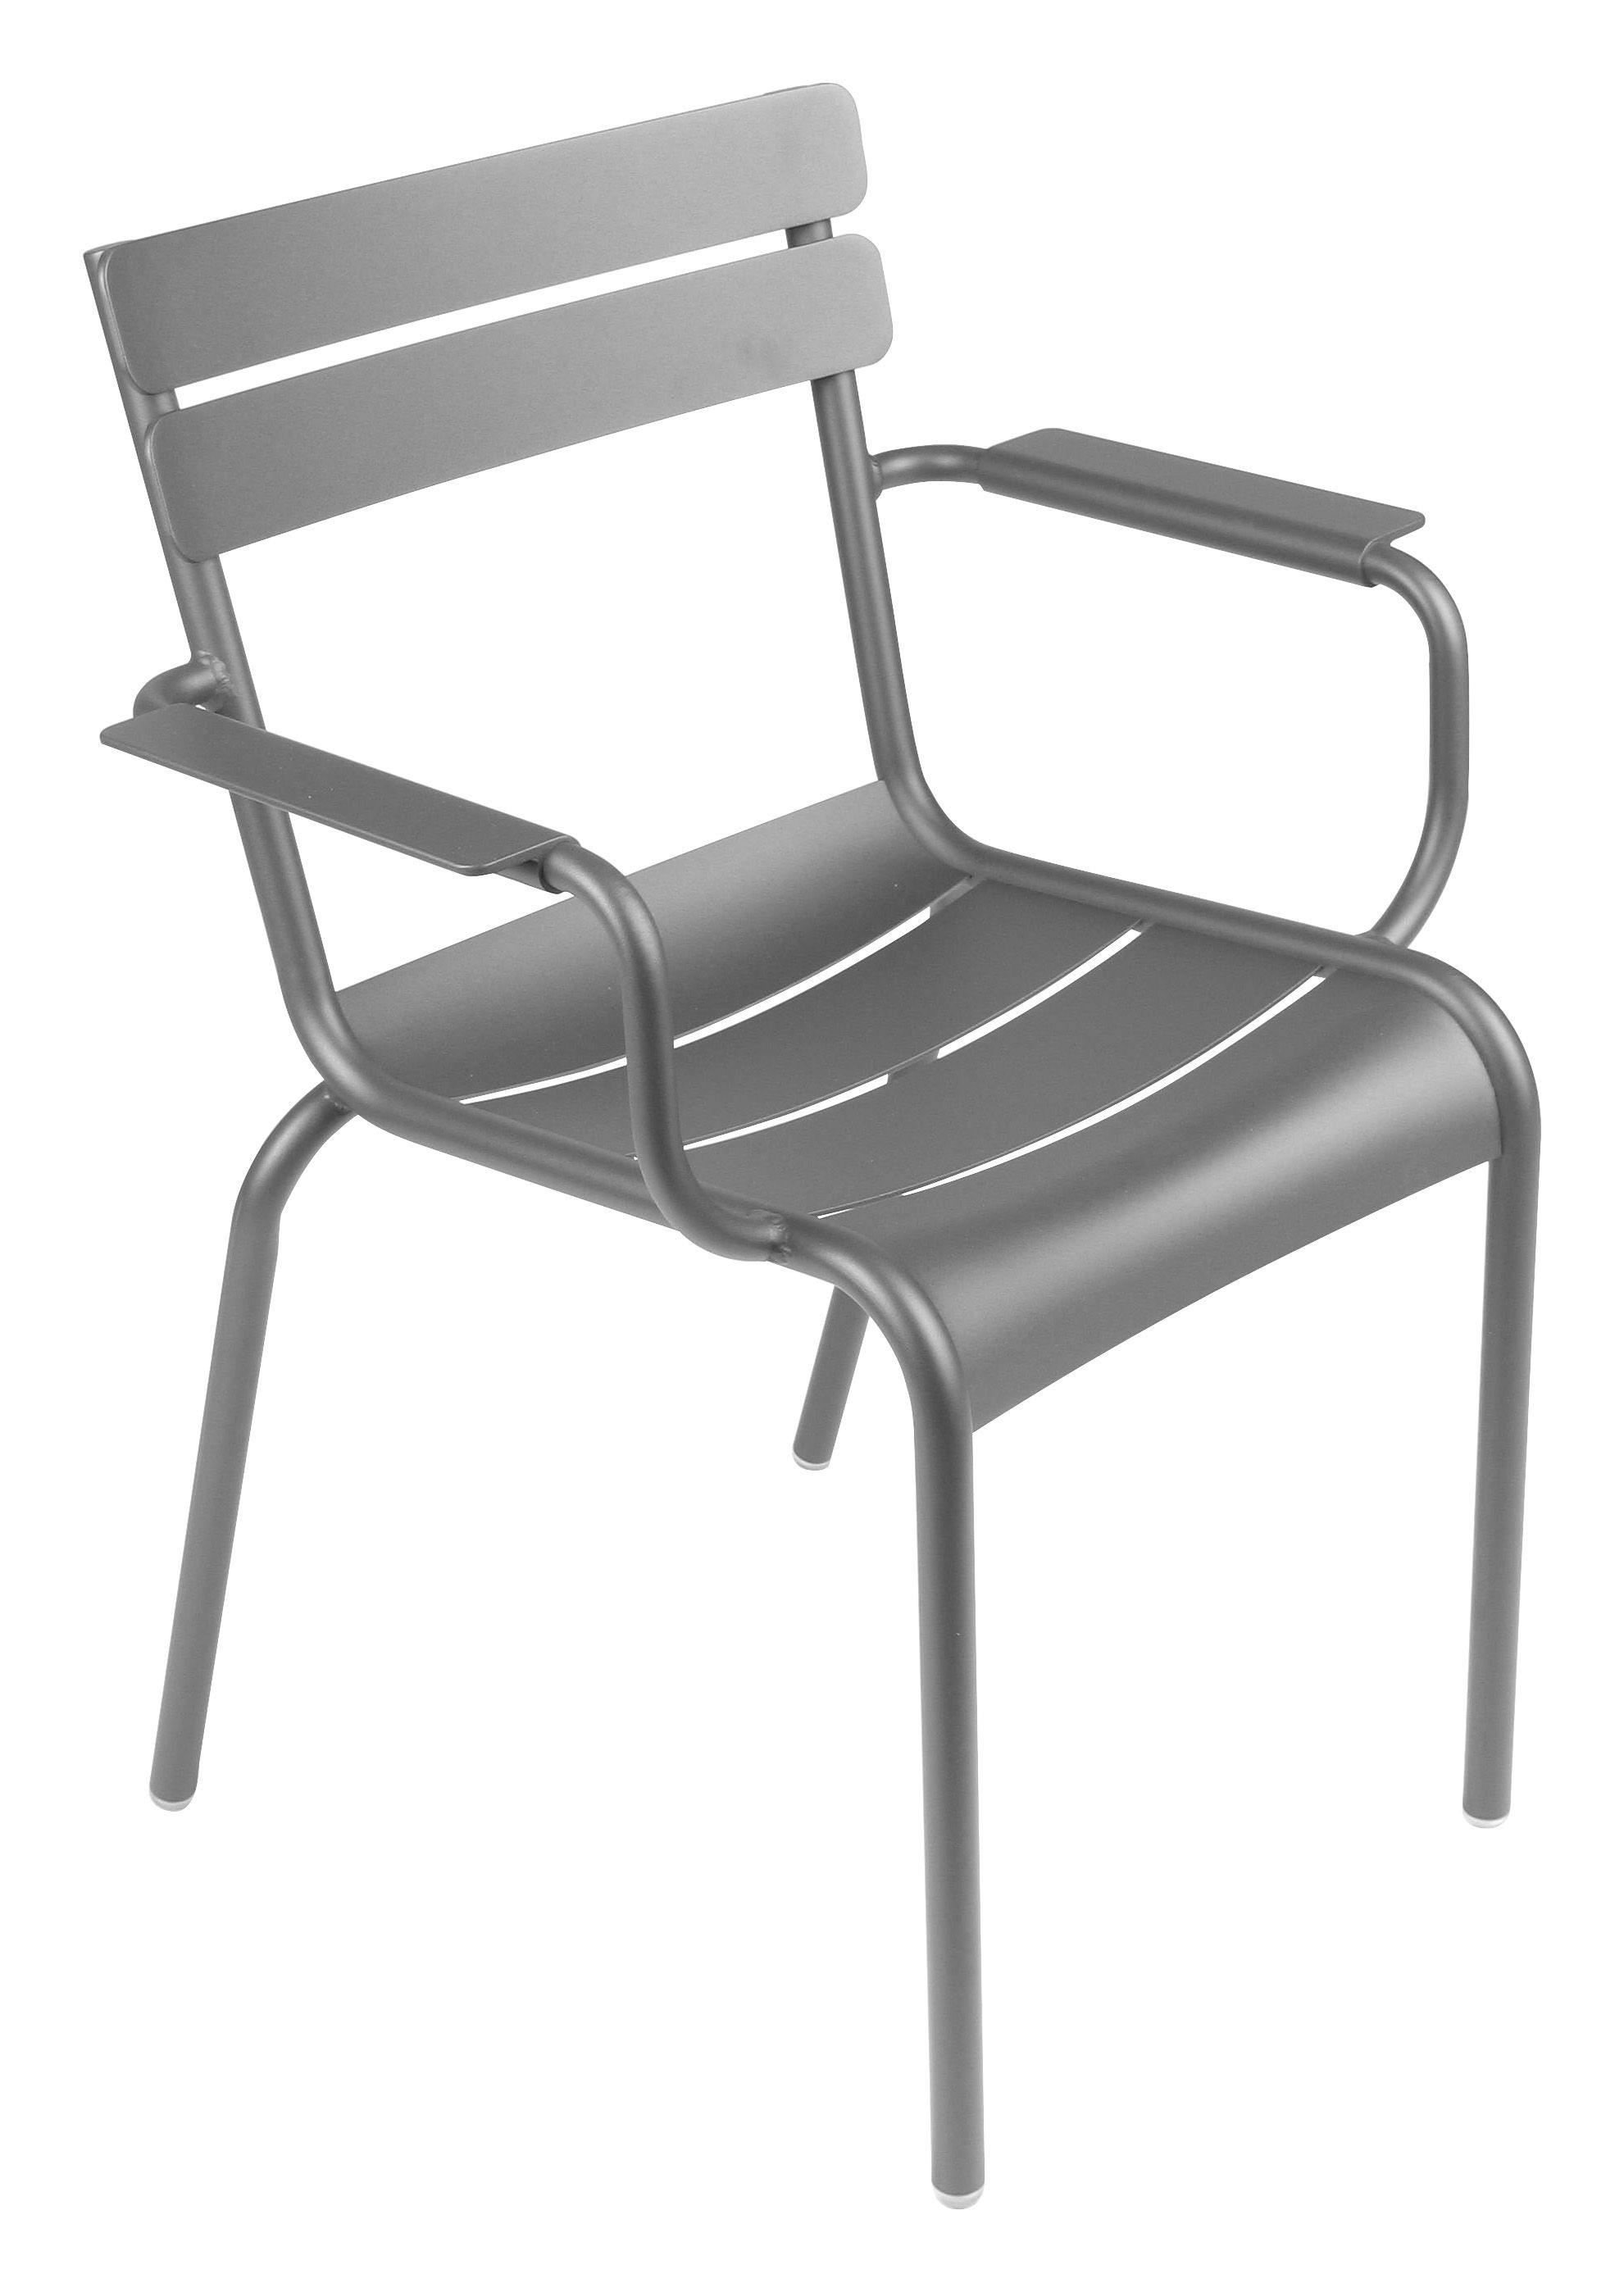 Life Style - Luxembourg Stackable armchair by Fermob - Steel grey - Lacquered aluminium